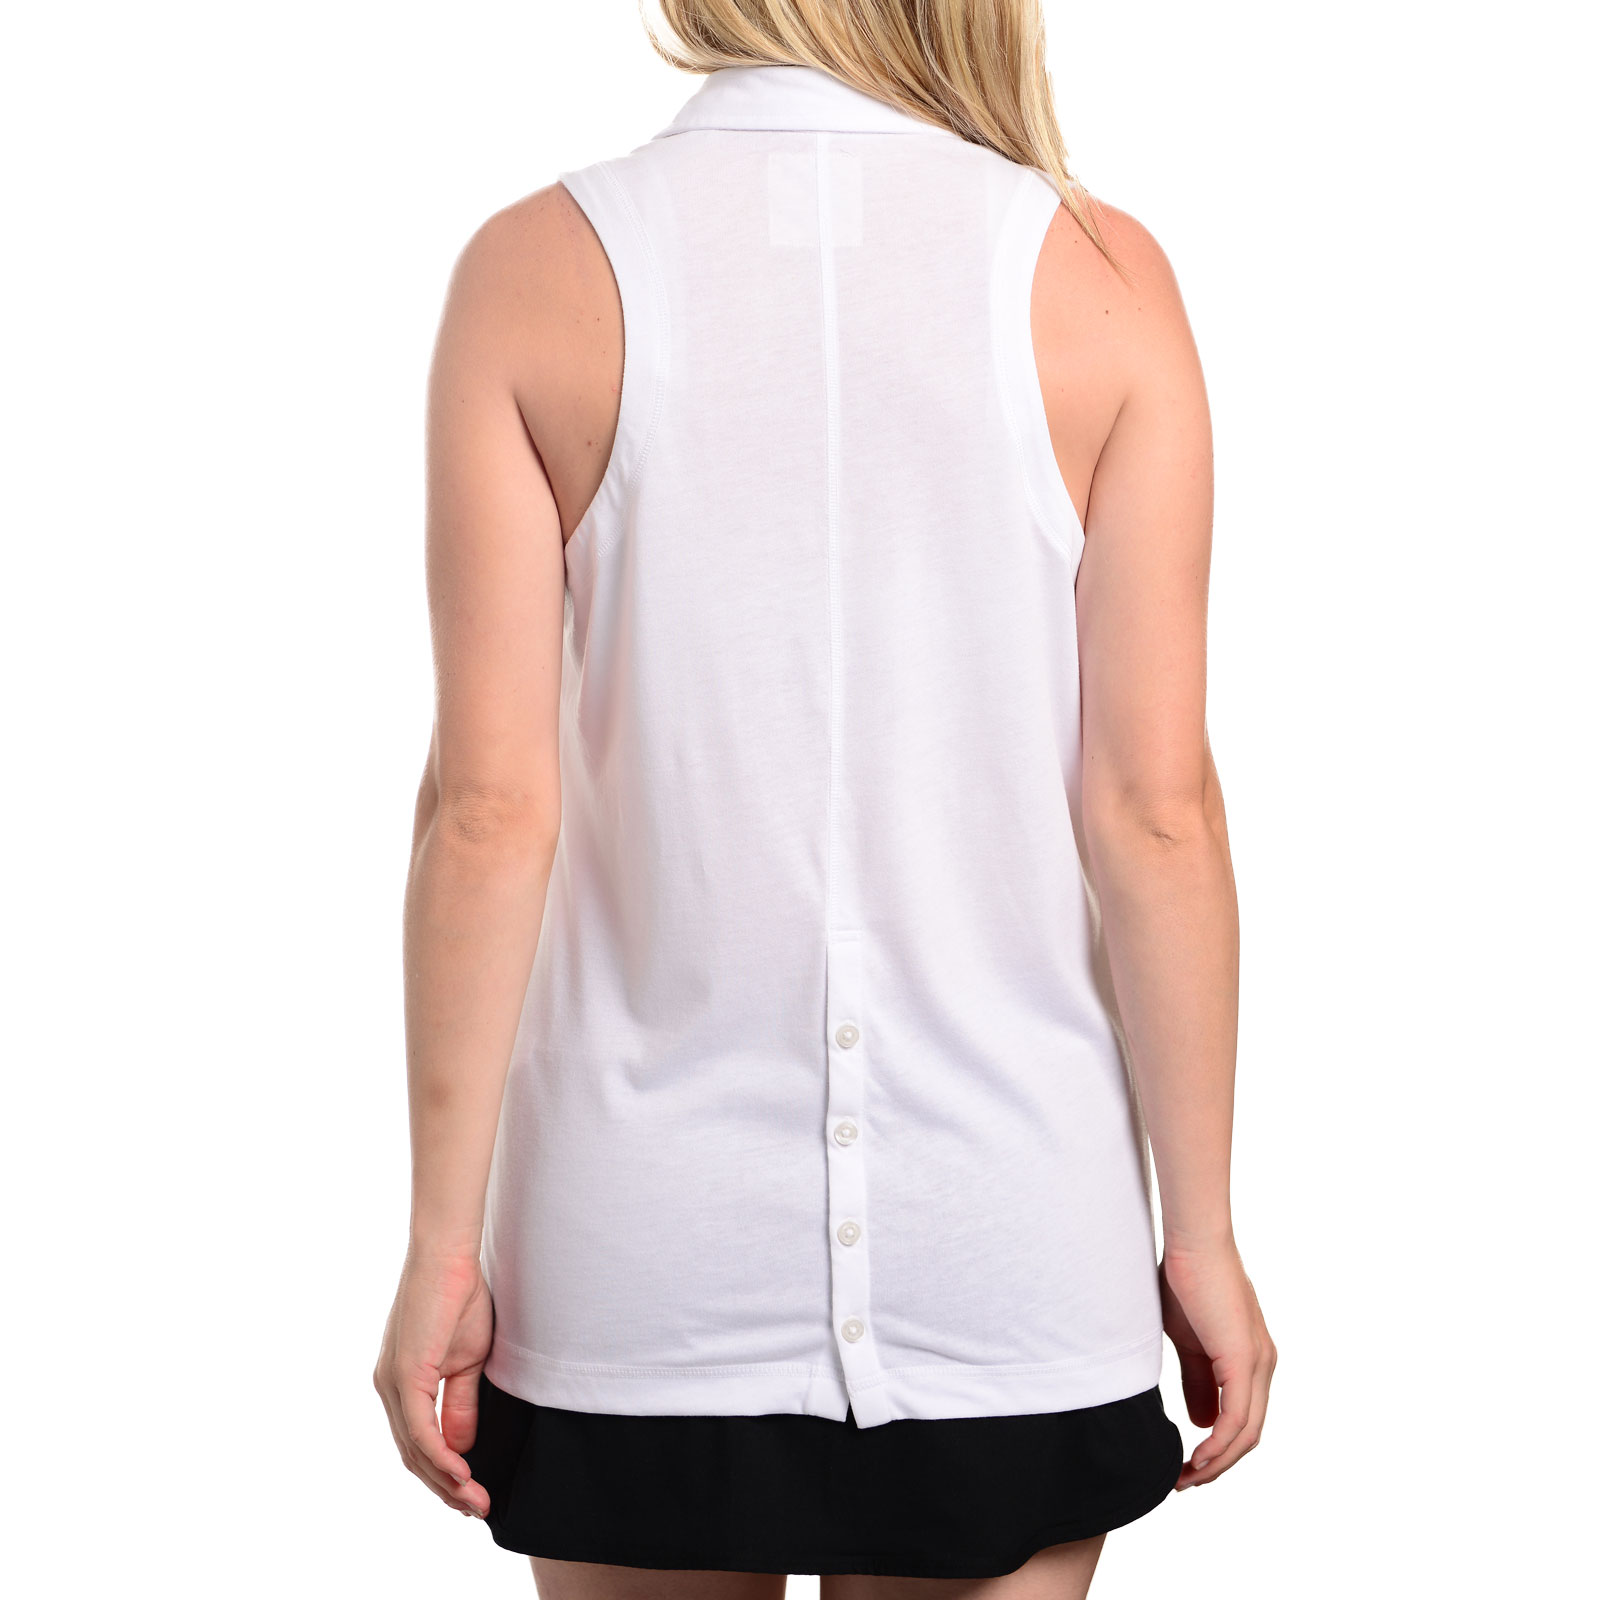 TGJ x Linksoul Women's Sleeveless Shirt - White